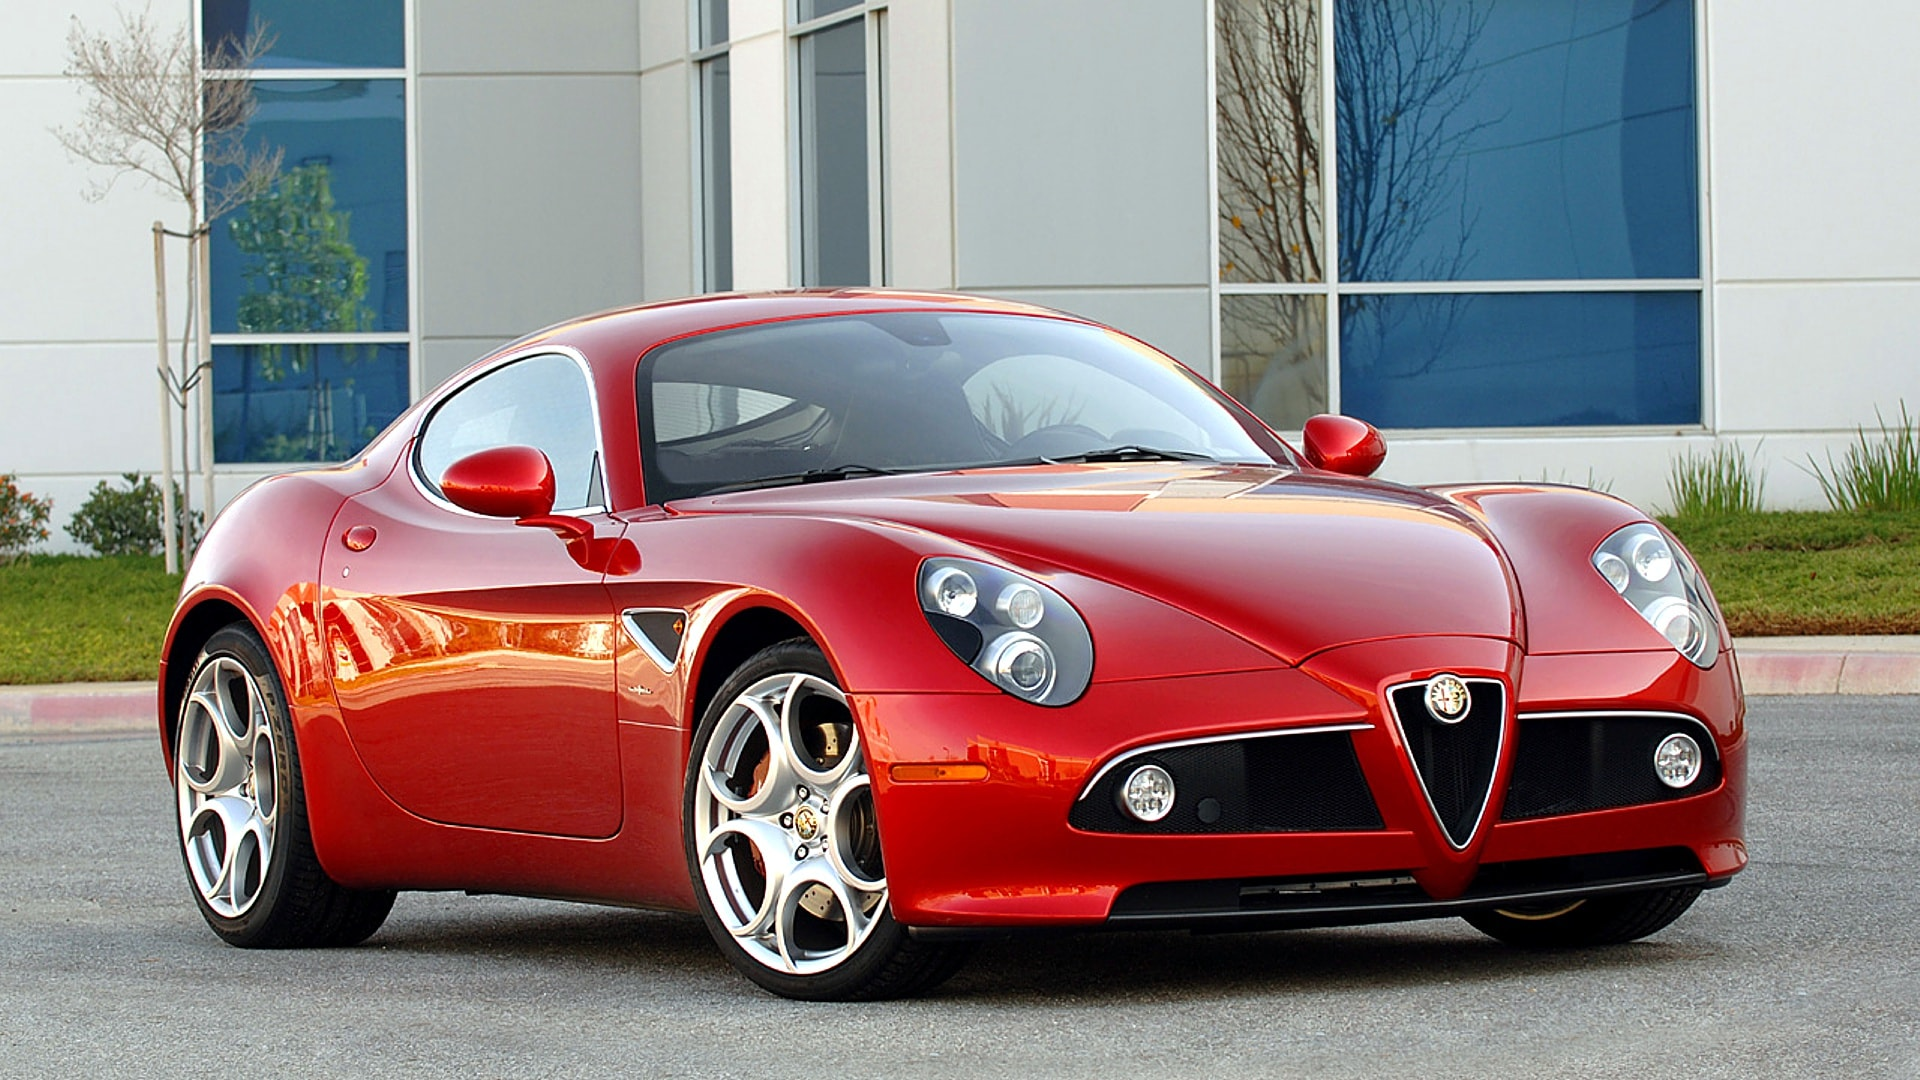 Alfa Romeo 8c Full hd wallpapers